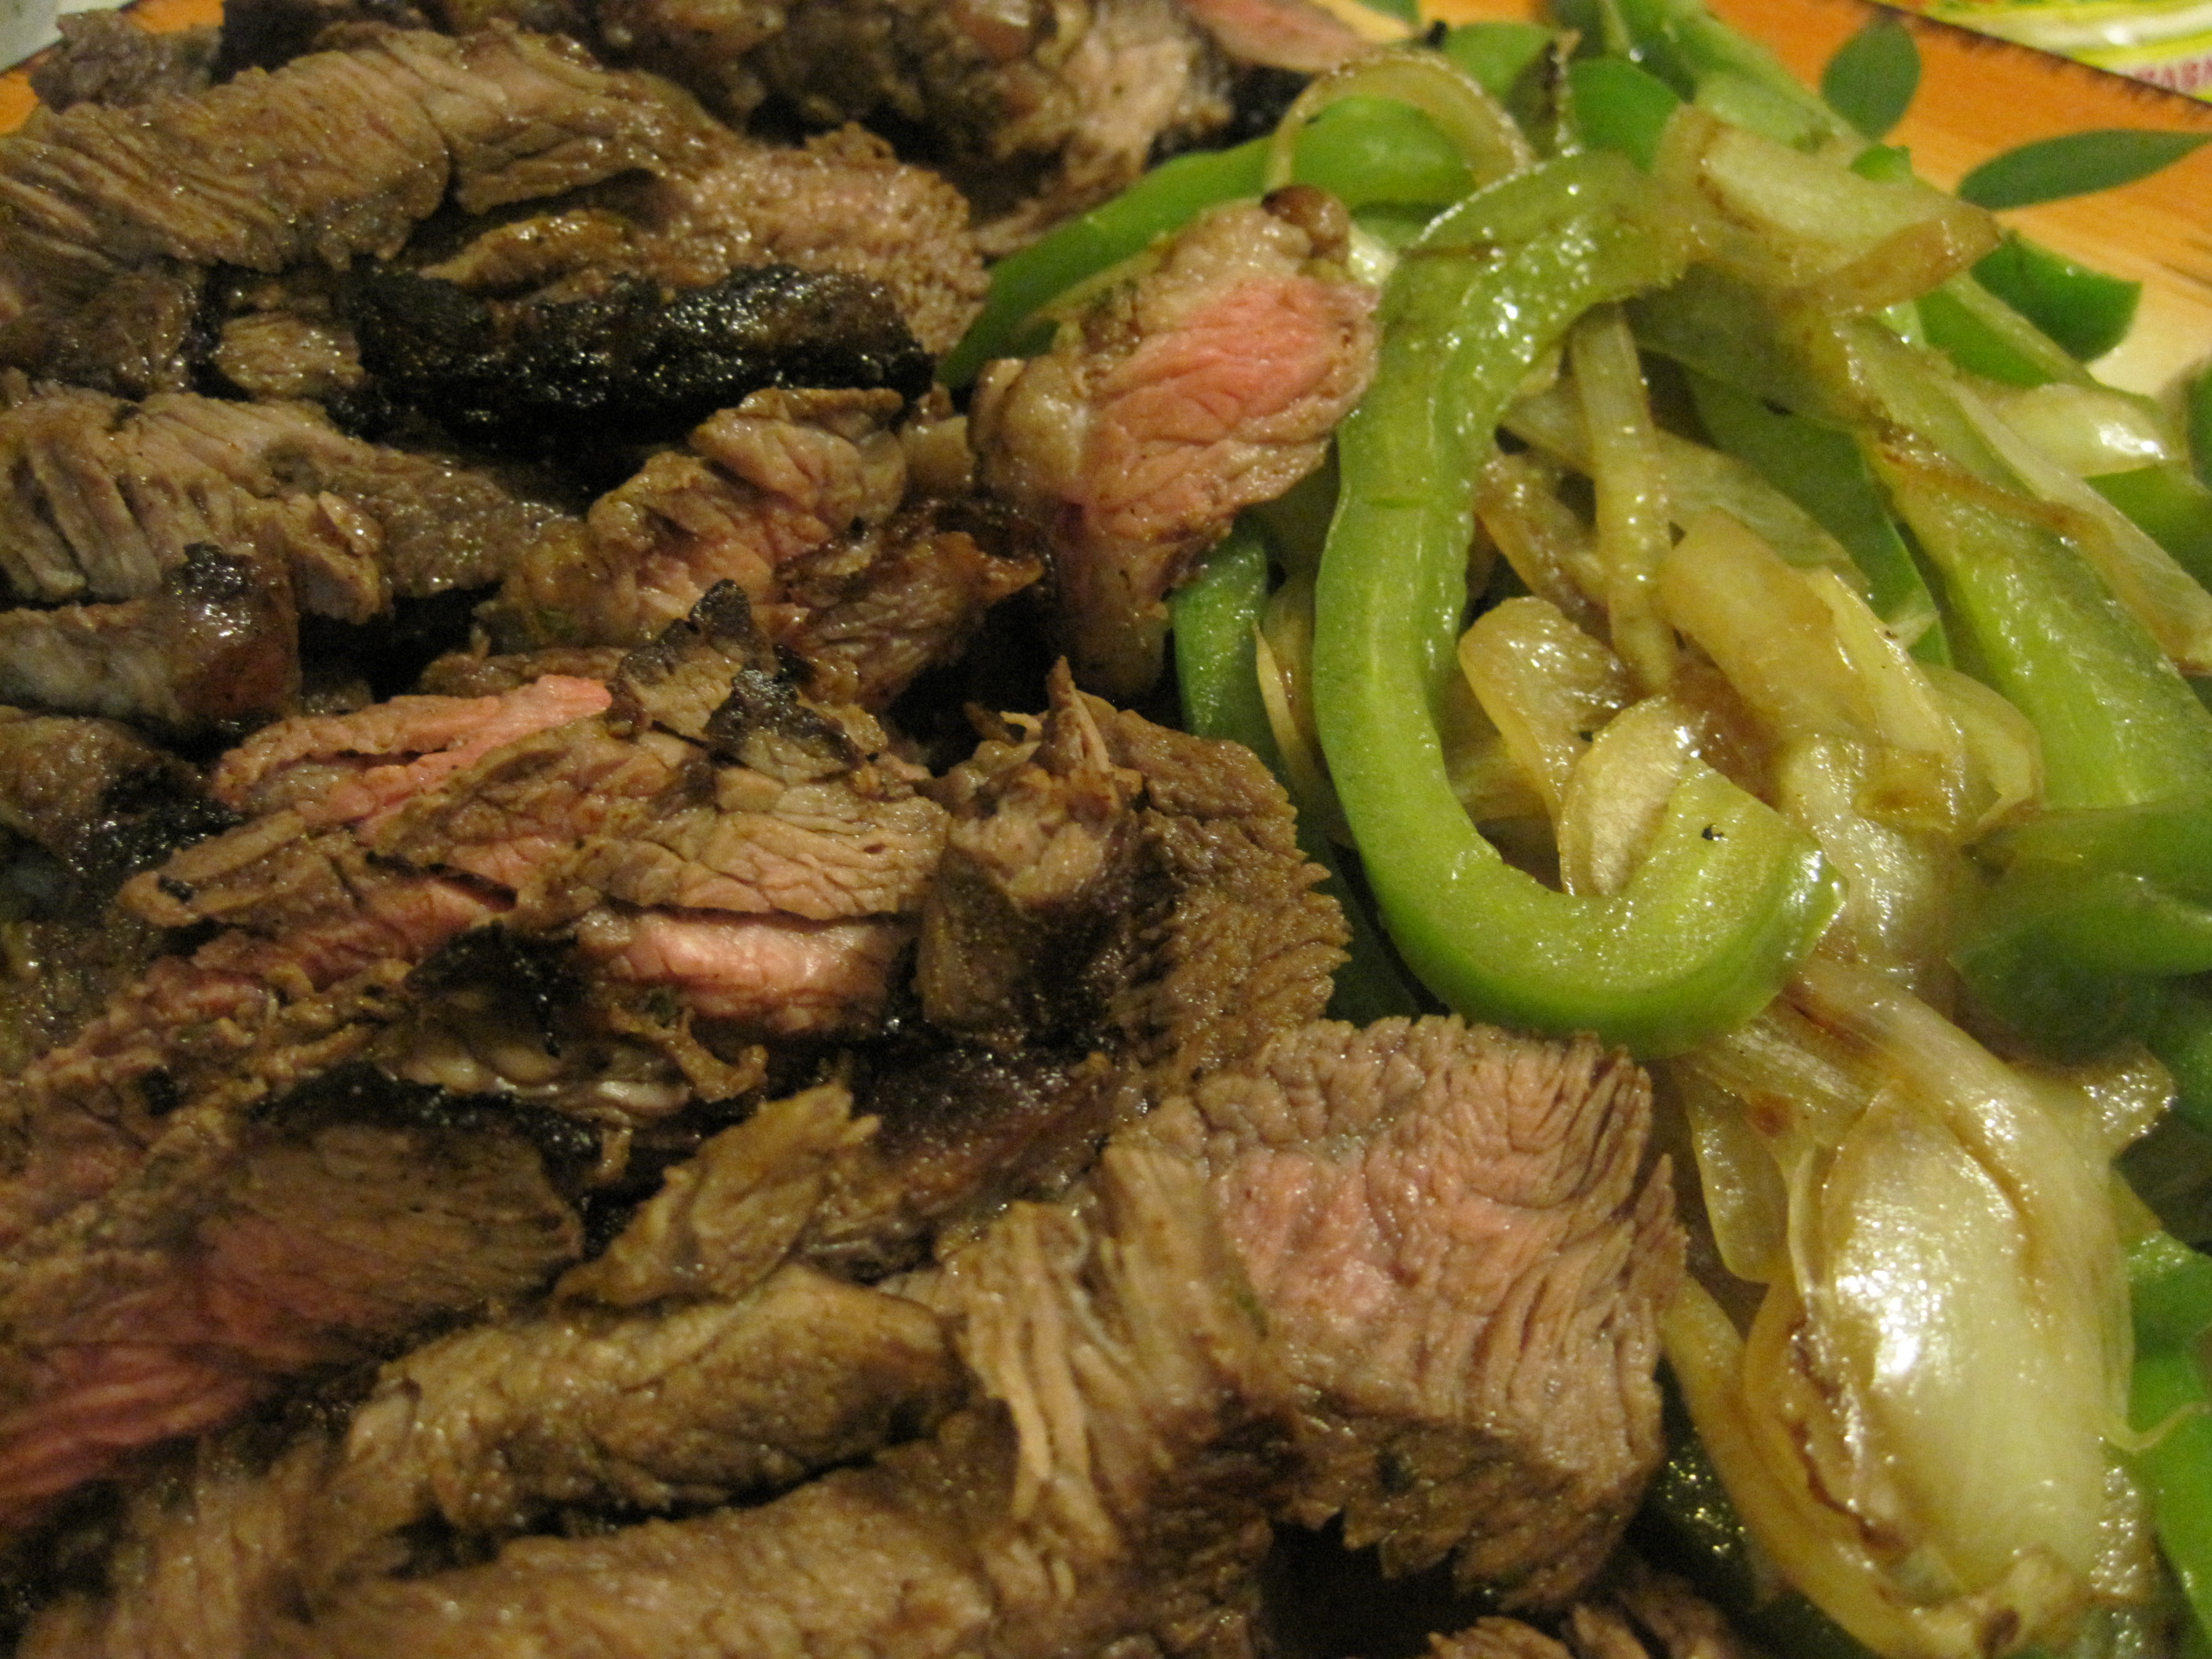 Chili Lime Steak Fajitas – Cooked From the Heart